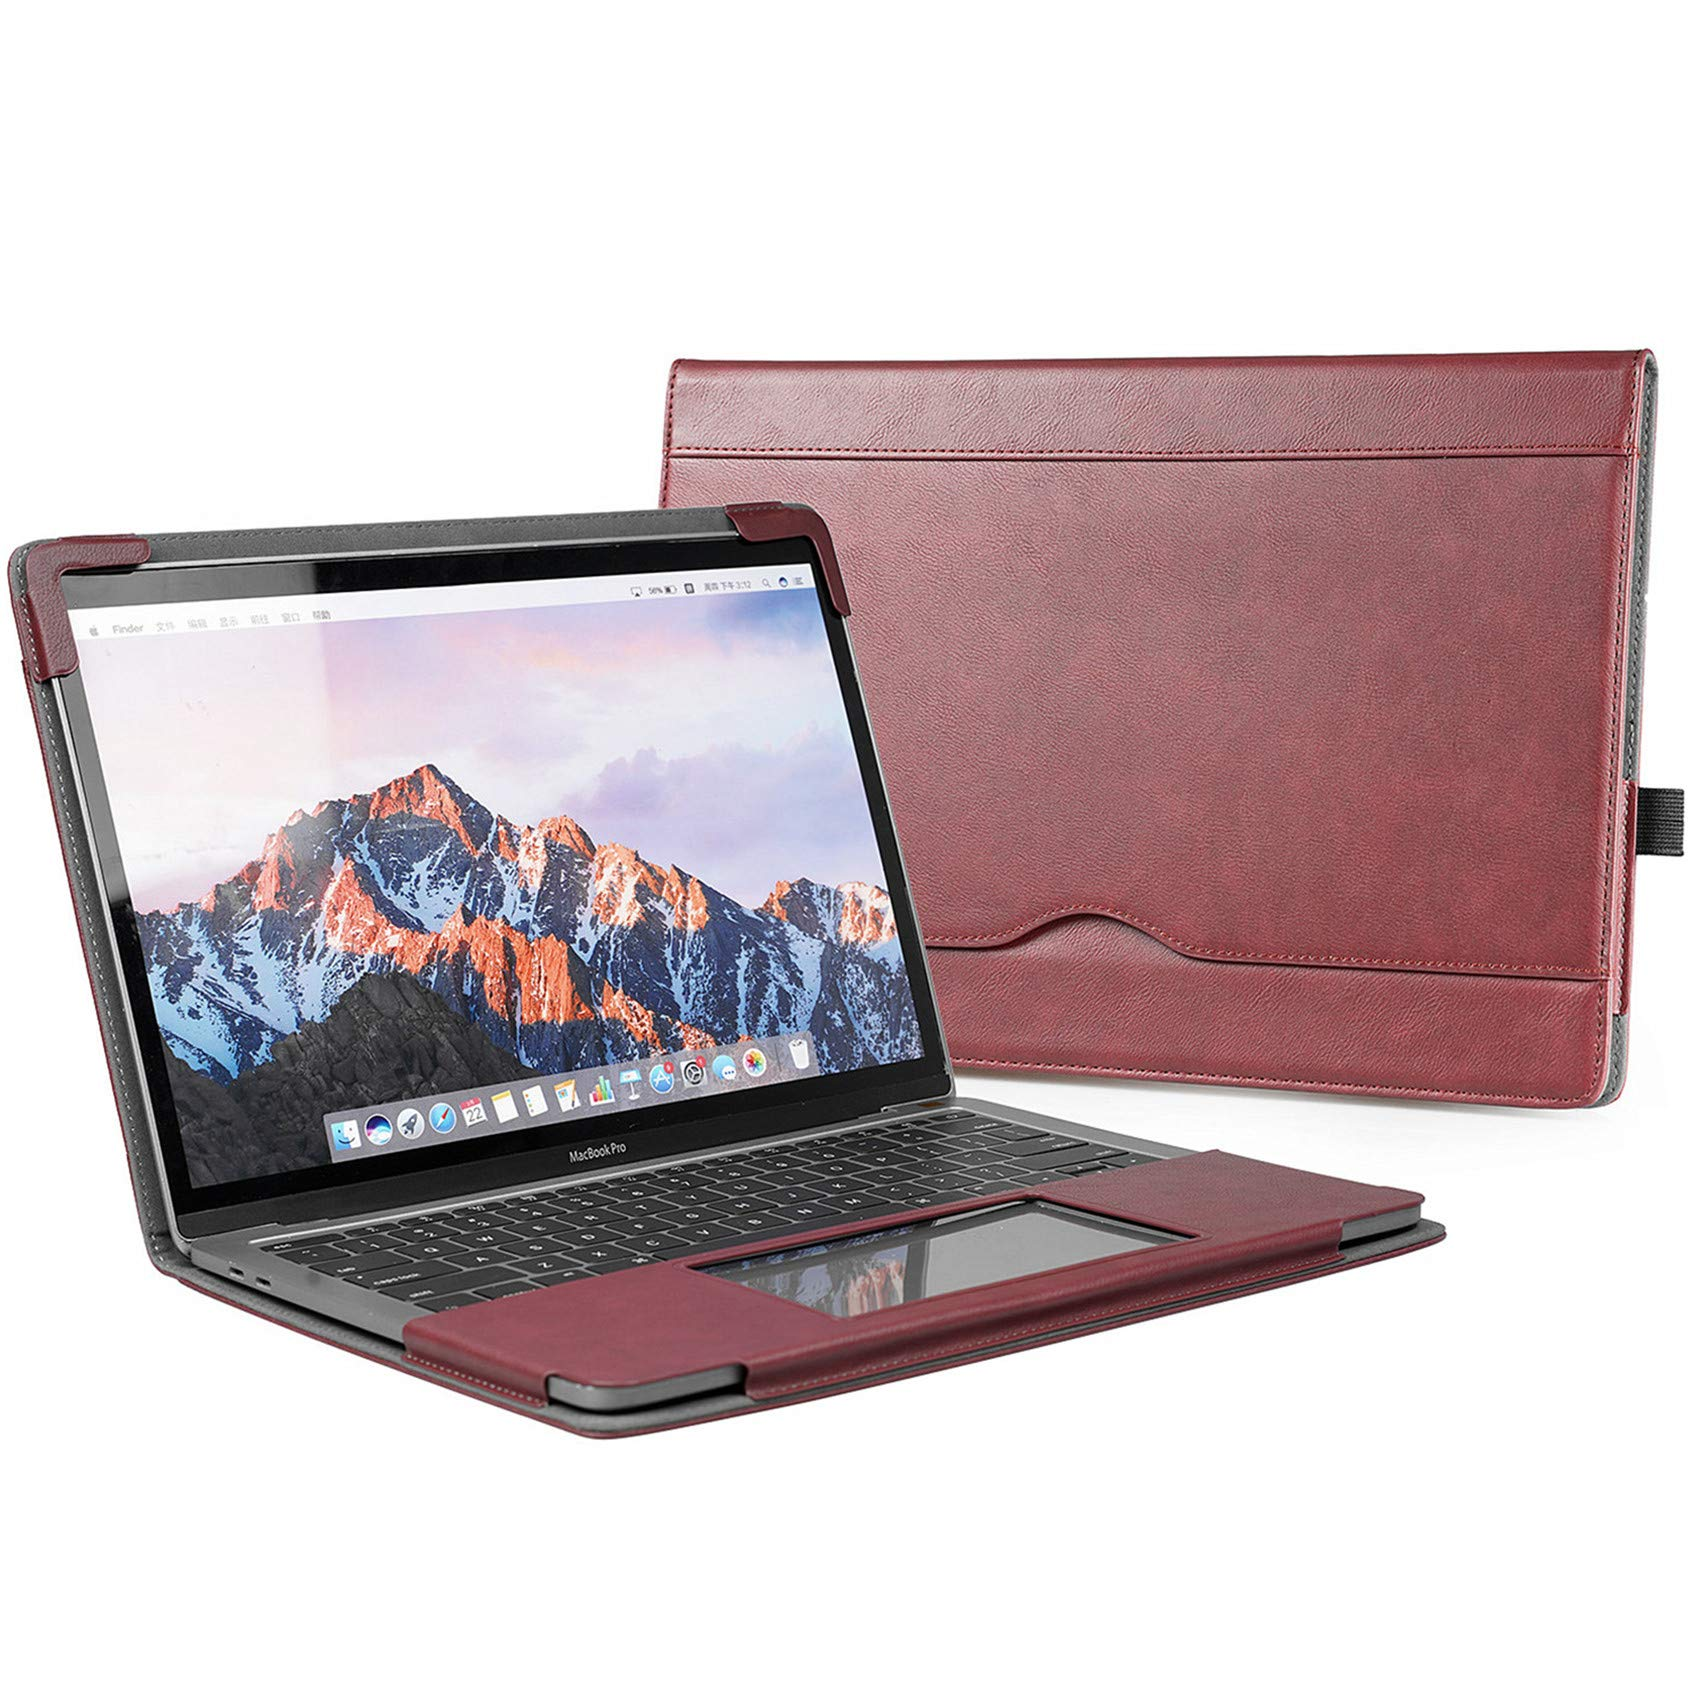 """TYTX Compatible with MacBook Pro Leather Case 13 Inch 2016-2020 (A1989 A1706 A1708 A2159 A2289 A2251 A2338) Laptop Sleeve Protective Folio Book Cover (New MacBook Pro 13"""", Wine Red)"""